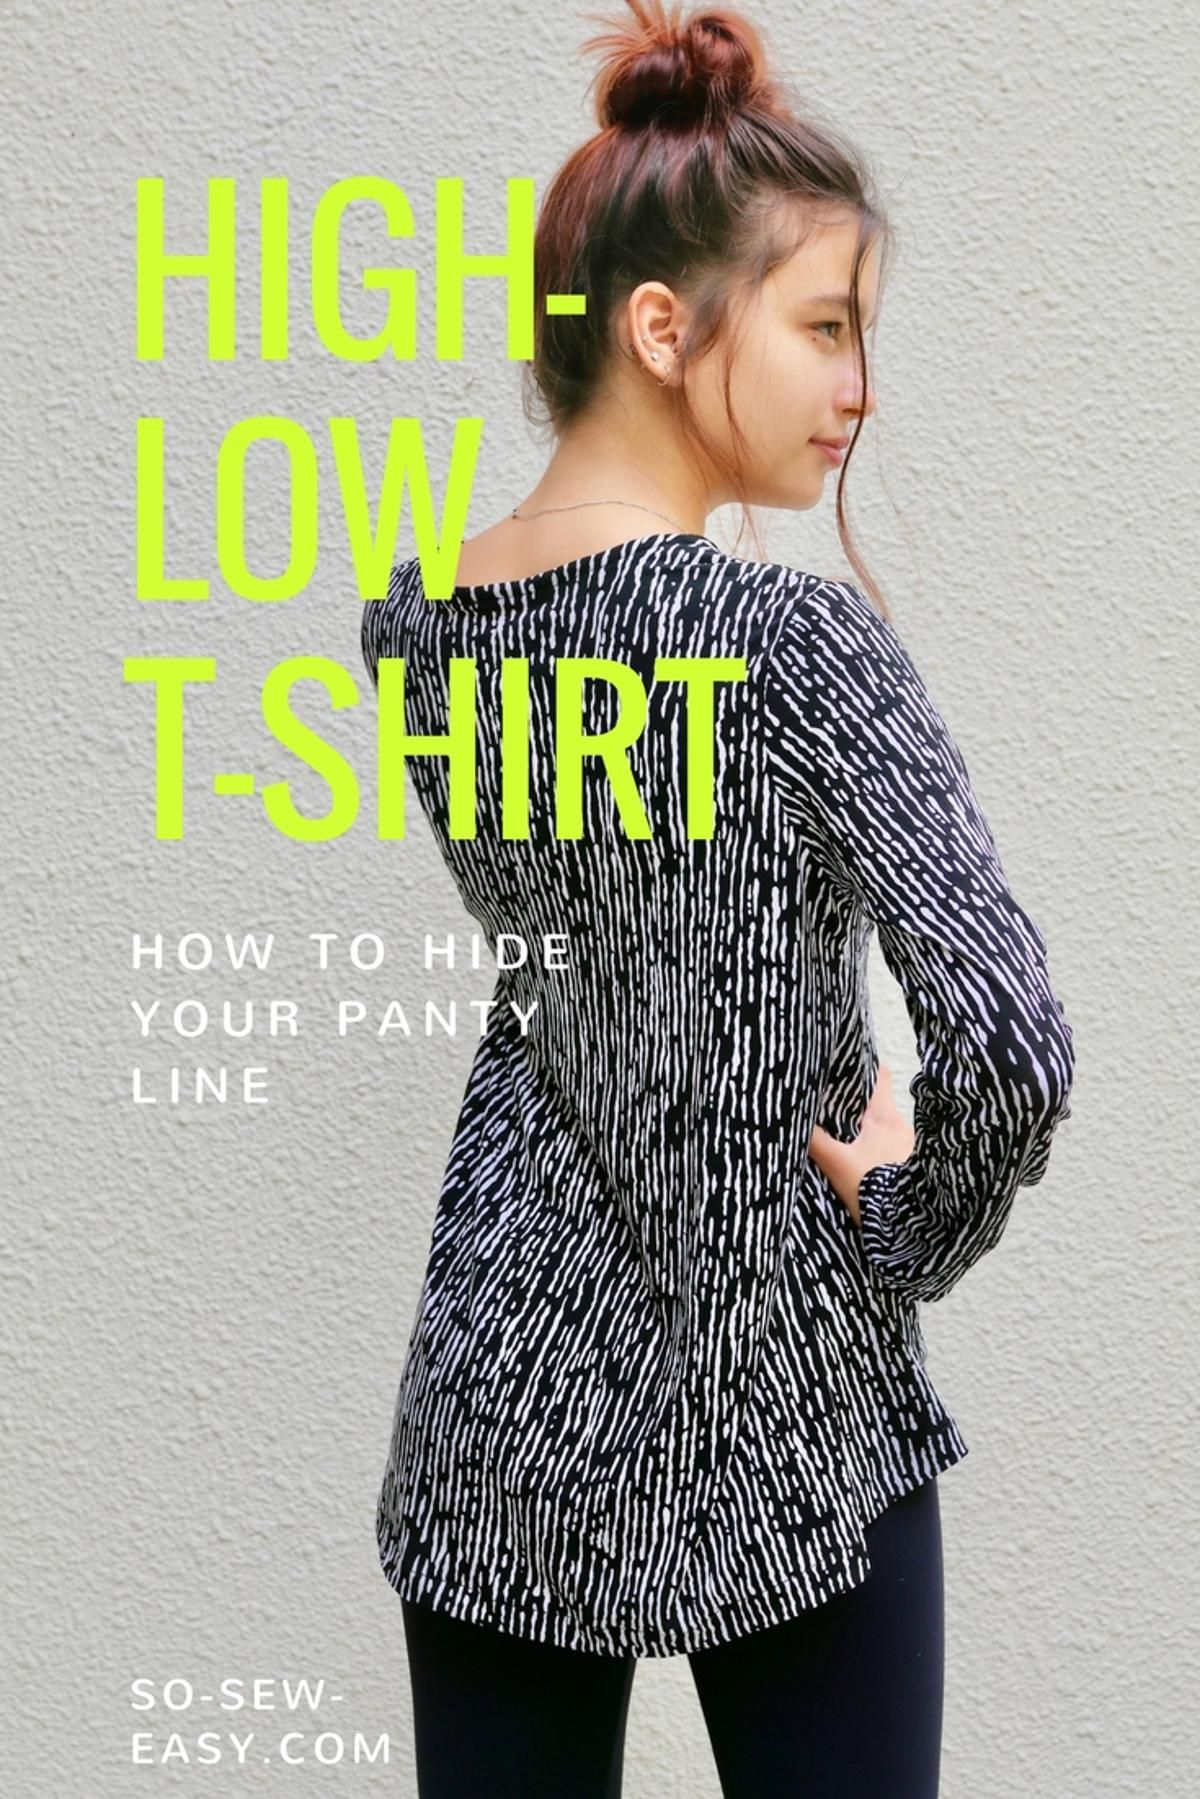 High-Low T-Shirt free pattern PDF download from Craftsy! | FREE Easy ...